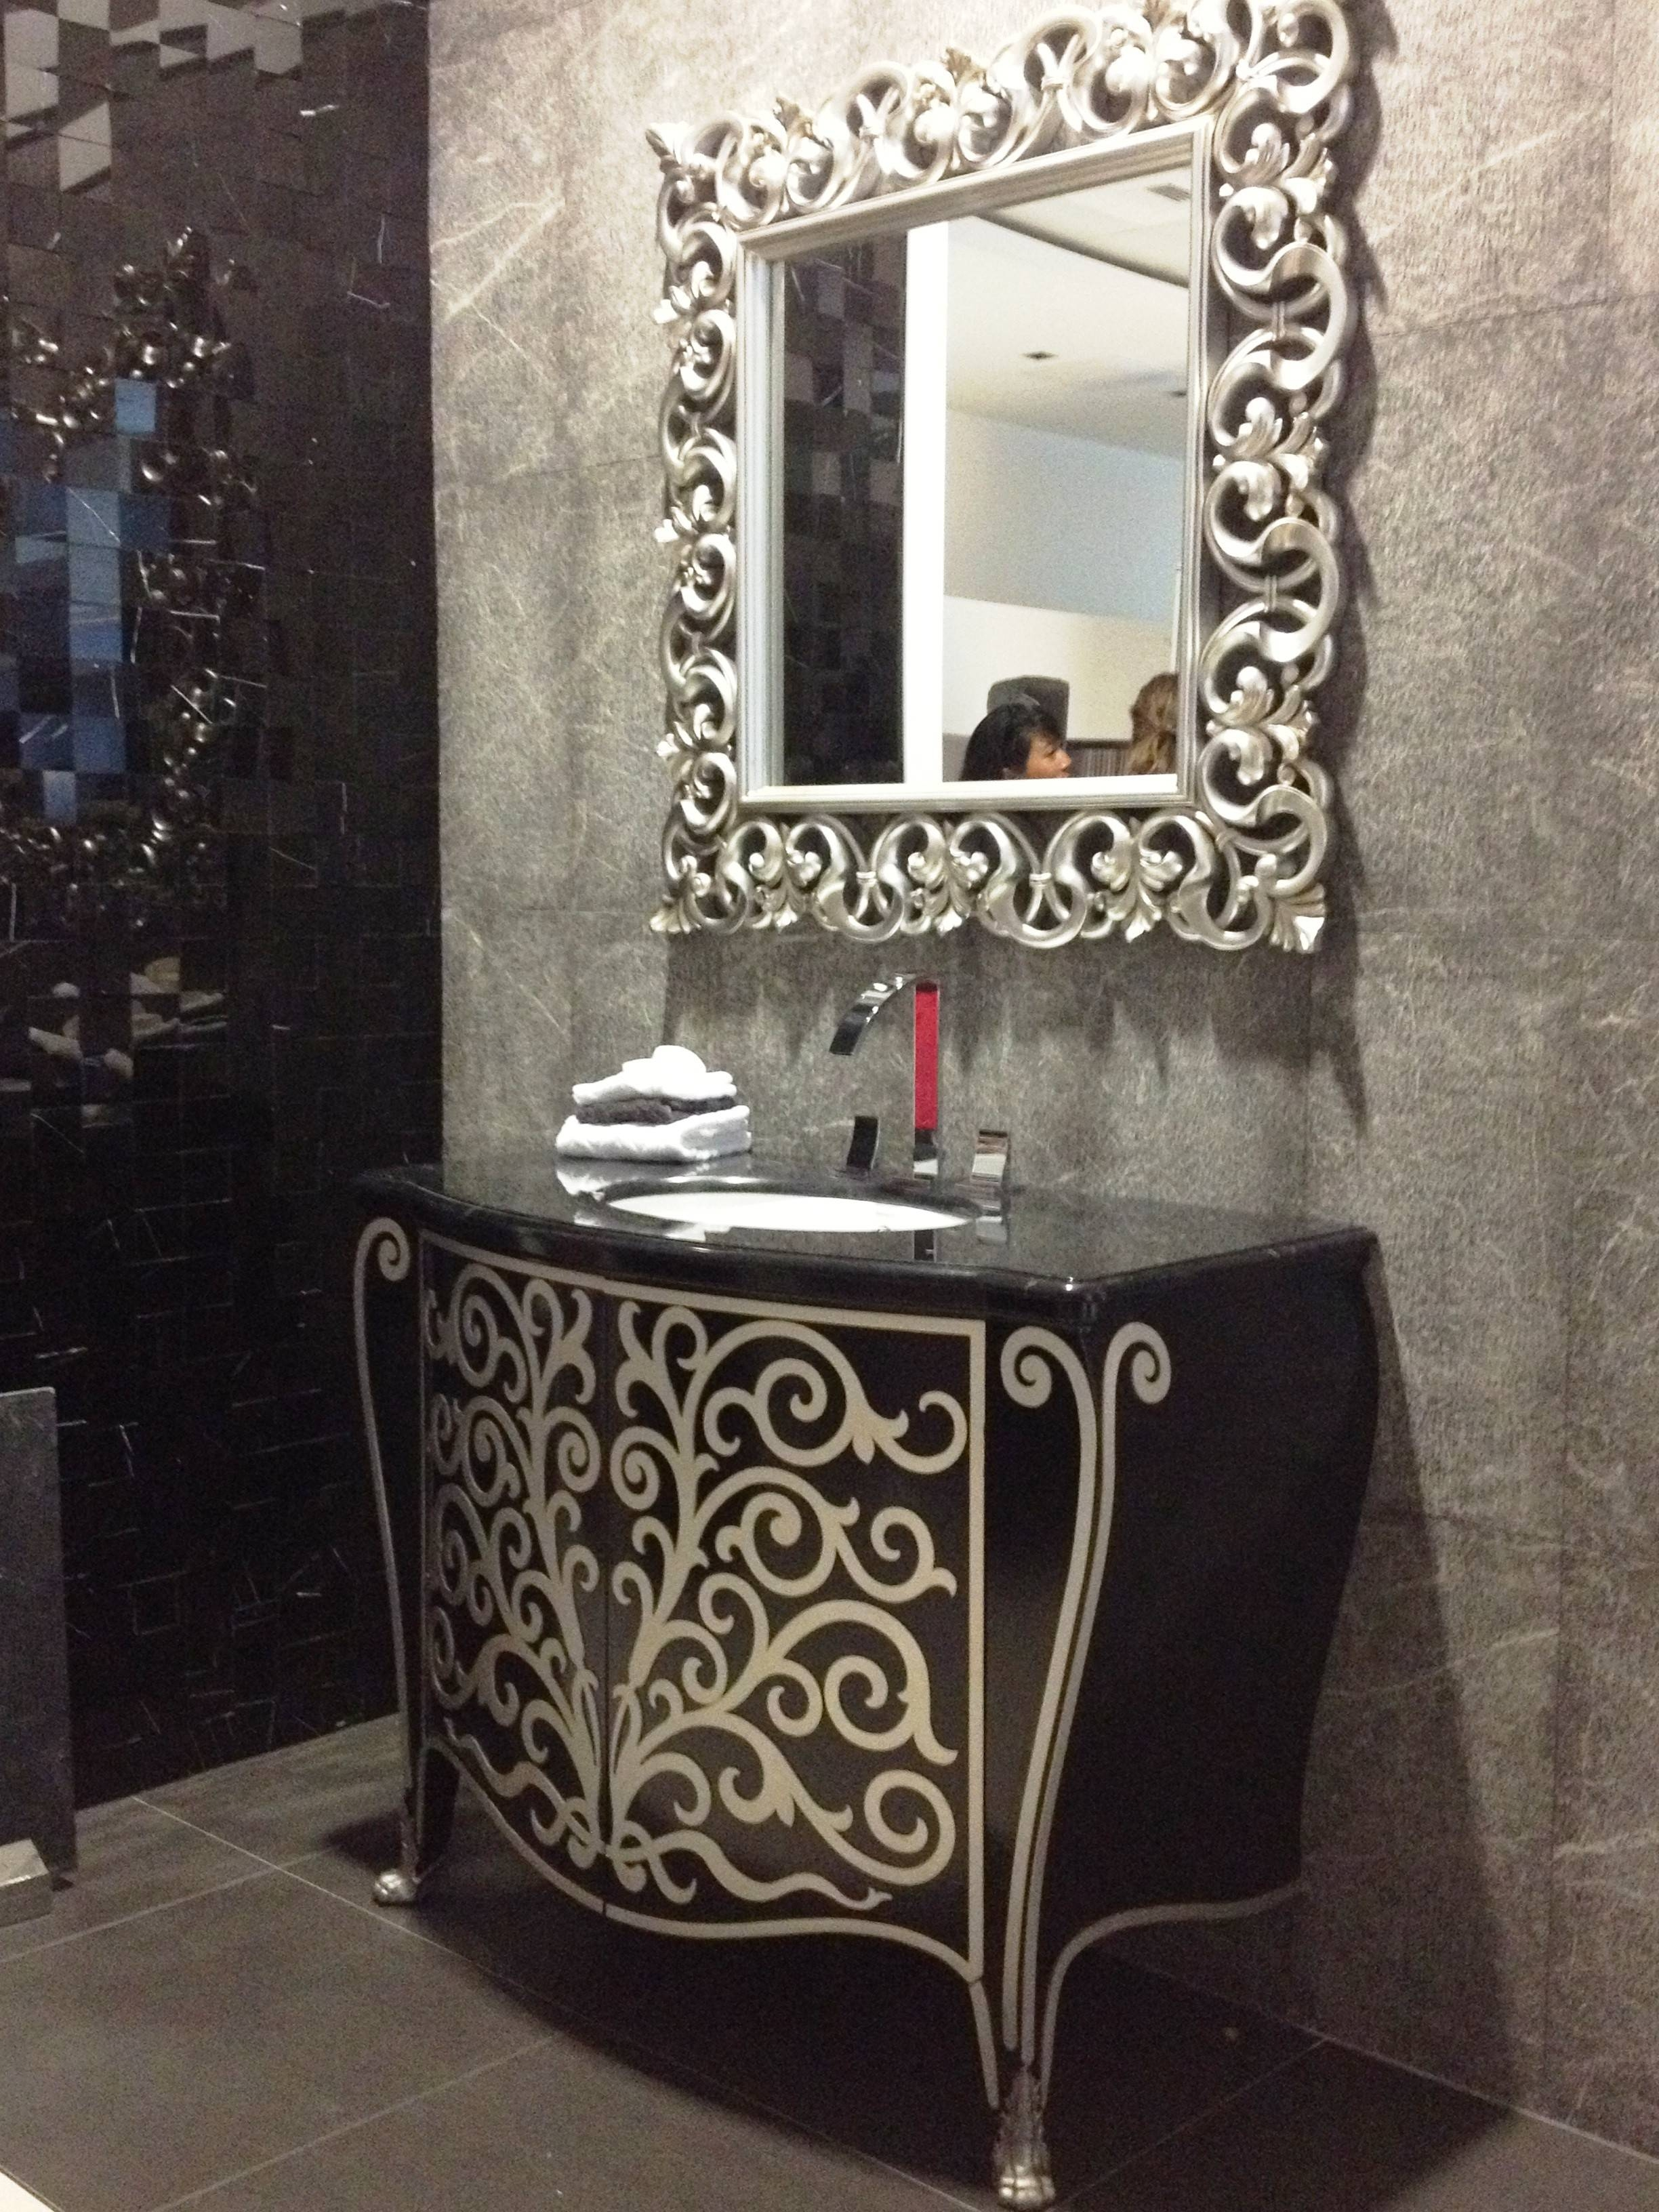 Bathroom Cabinets : Silver Framed Wall Mirror Bathroom Vanity Within Large Artistic Mirrors (View 13 of 15)